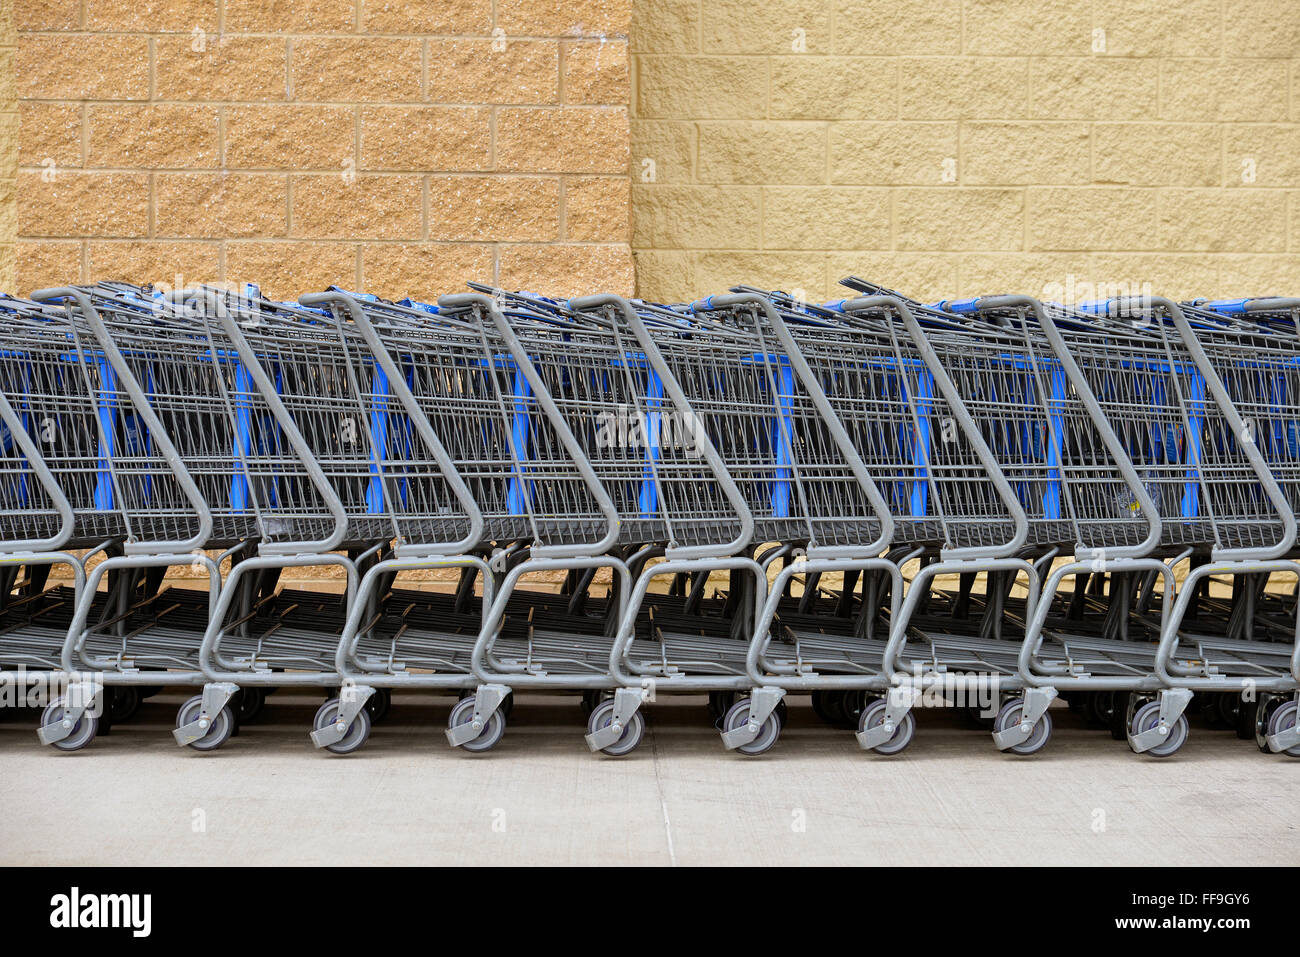 Line of grocery carts - Stock Image